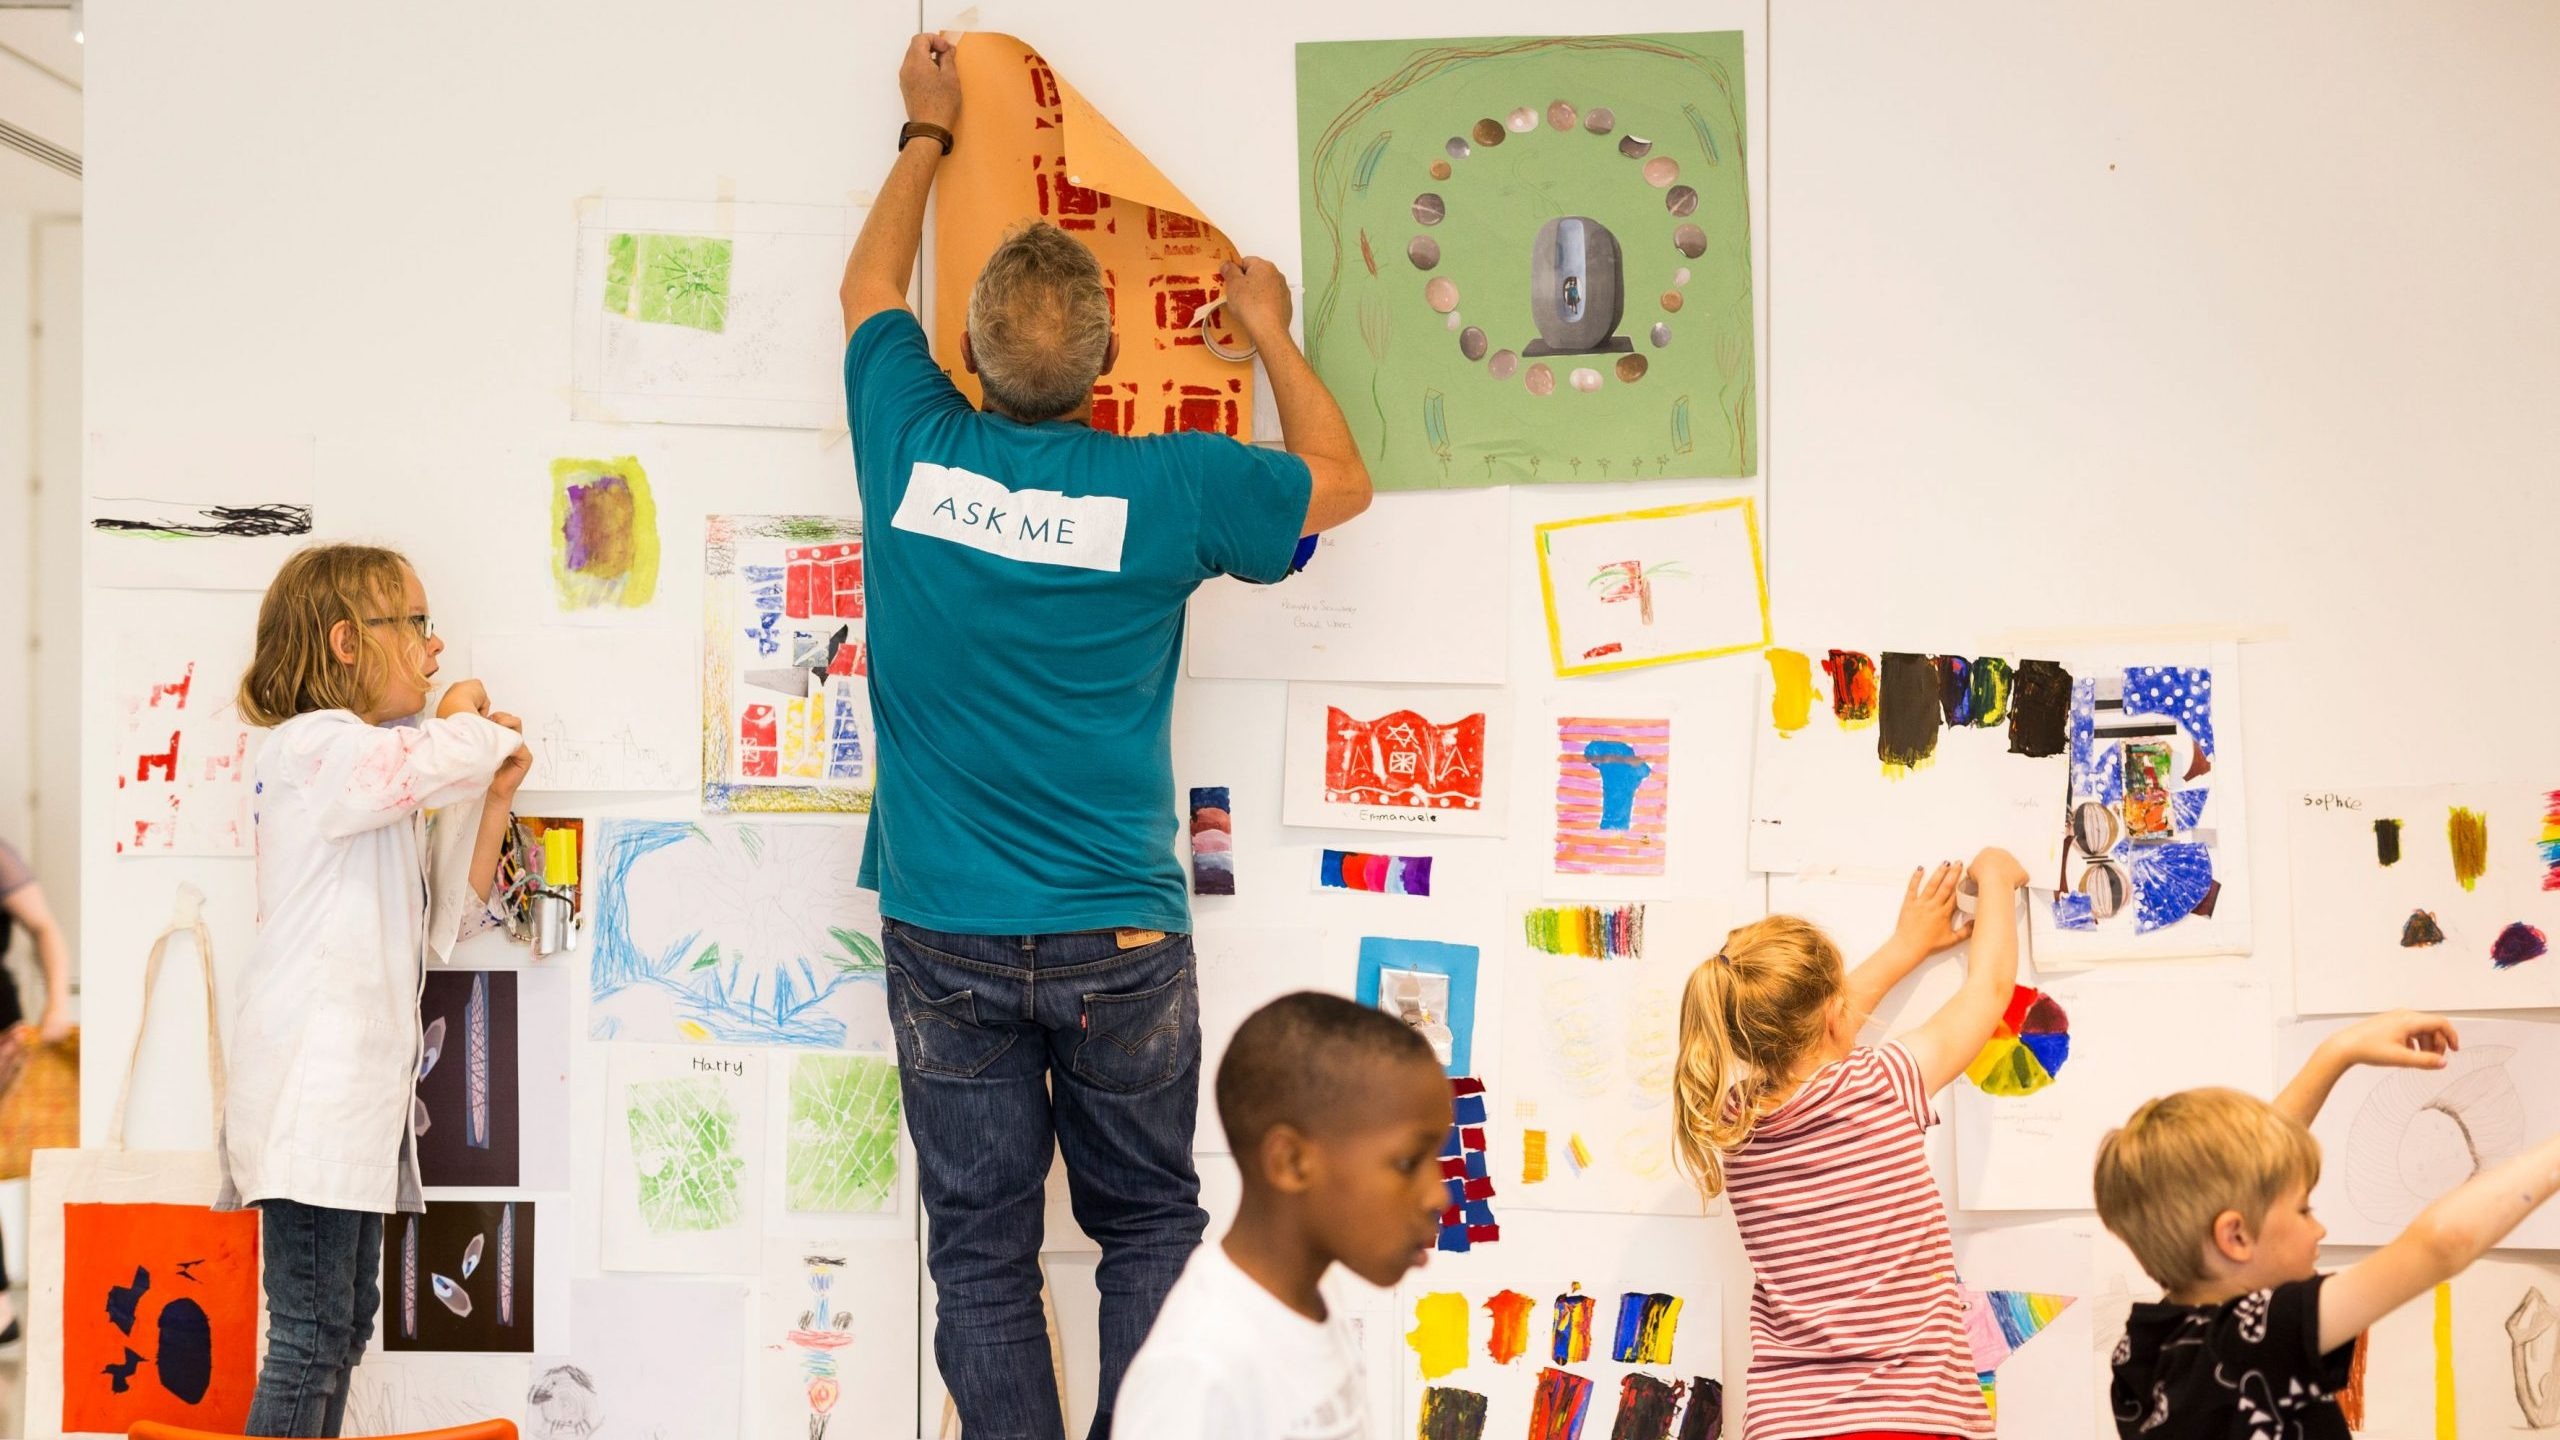 The Hepworth Wakefield is participating in the summer schools programme this year